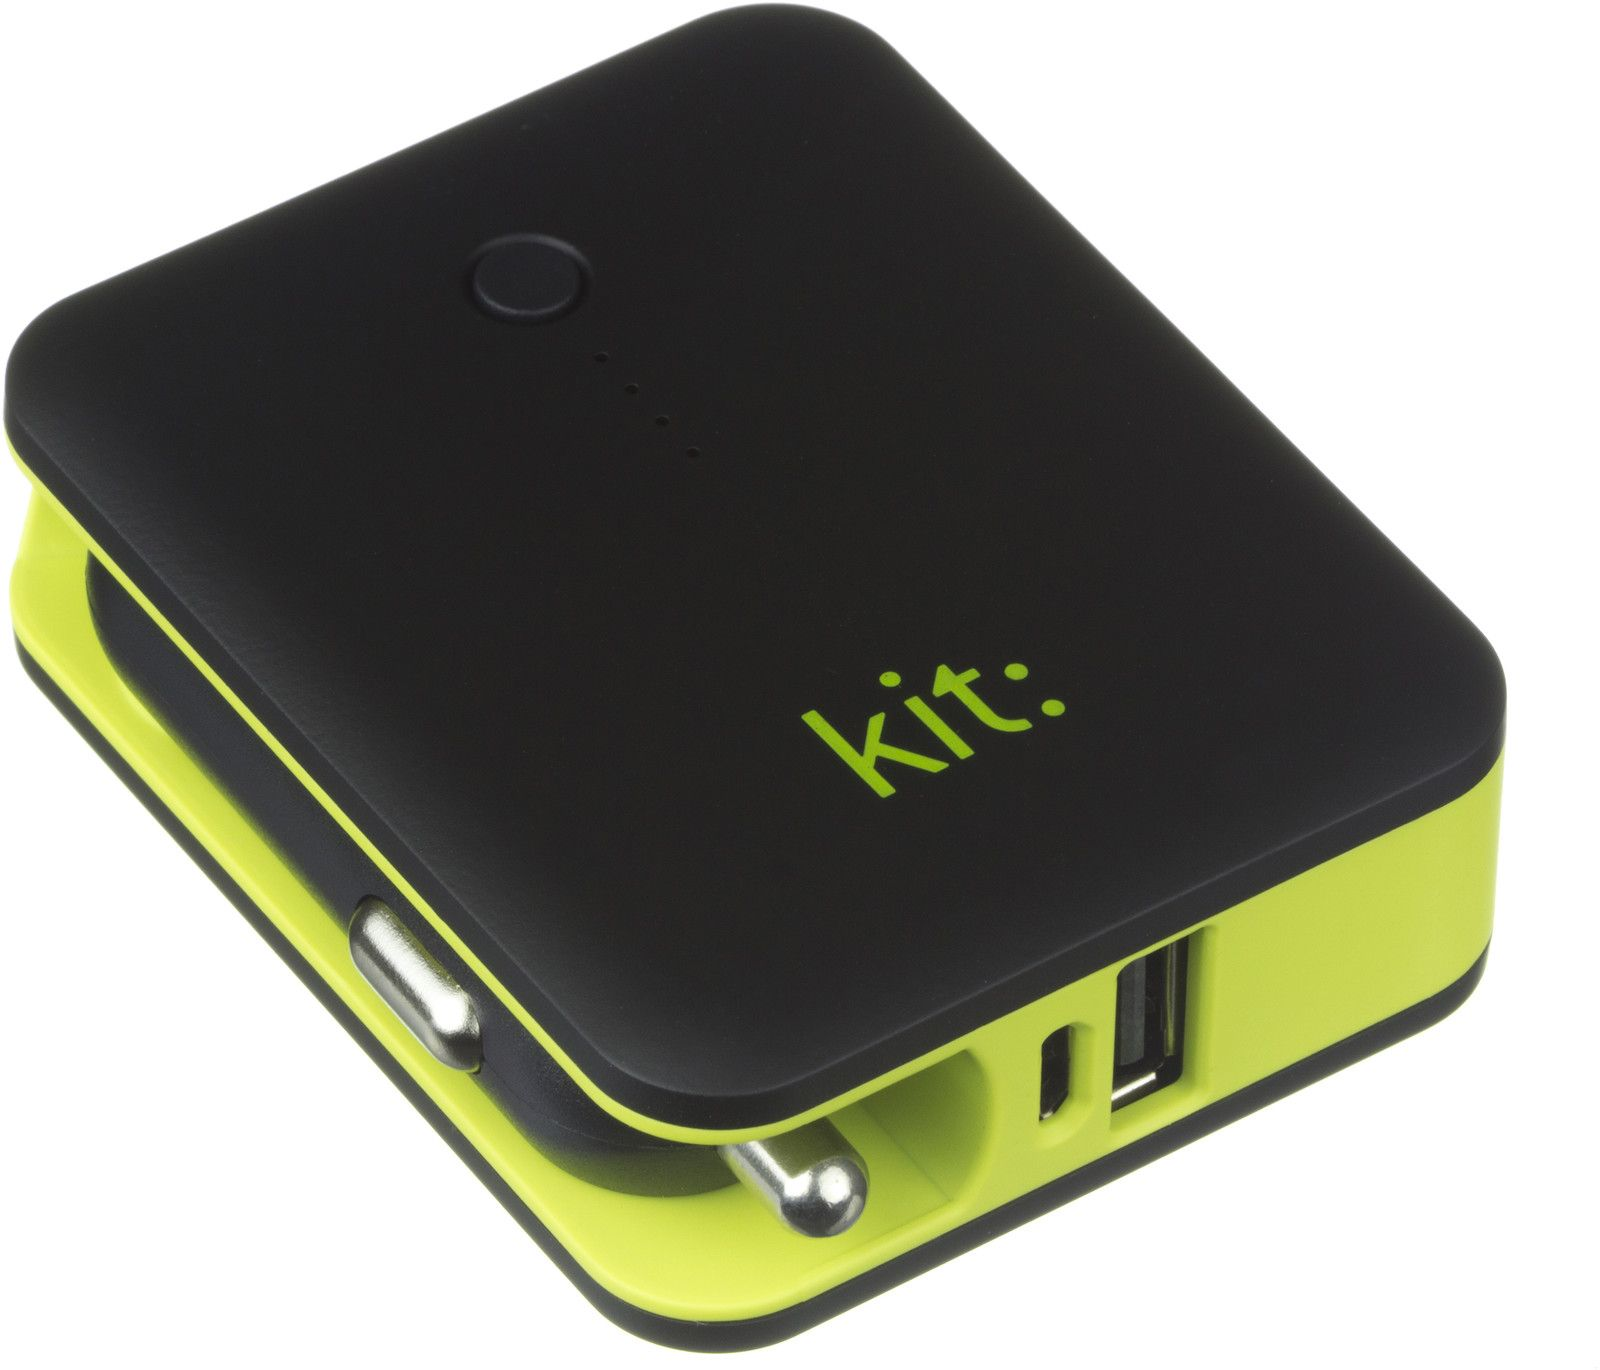 Kit In-Car Charger with Power Bank 3000mAh